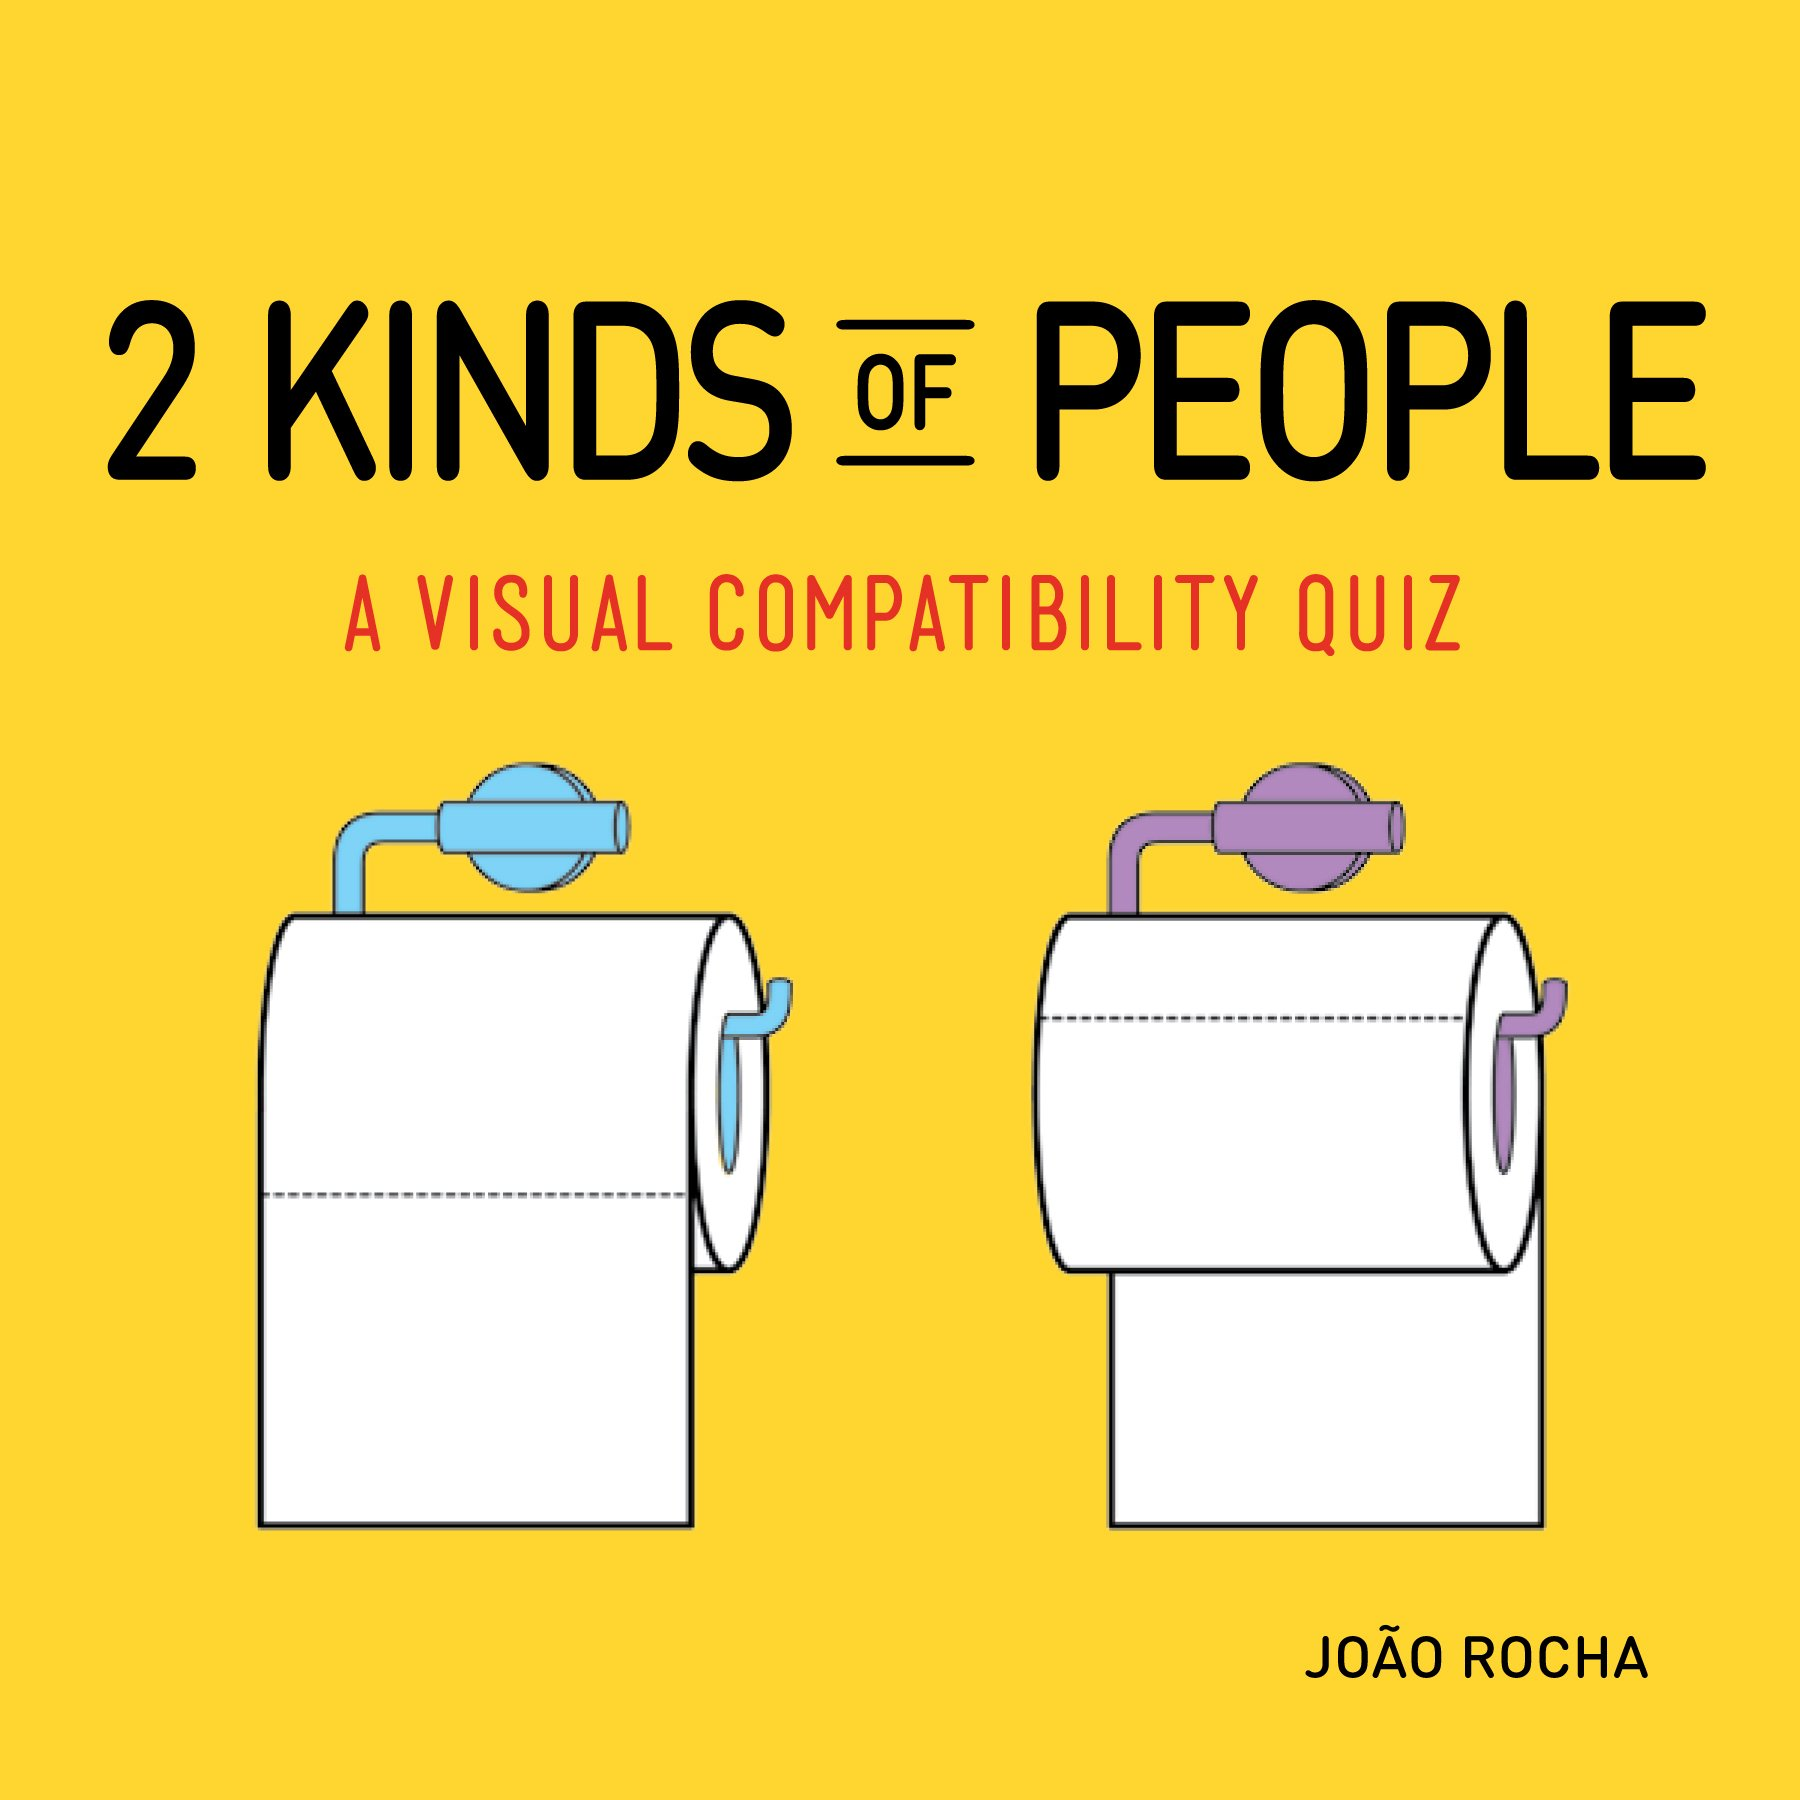 2 kinds of people a visual compatibility quiz joão rocha